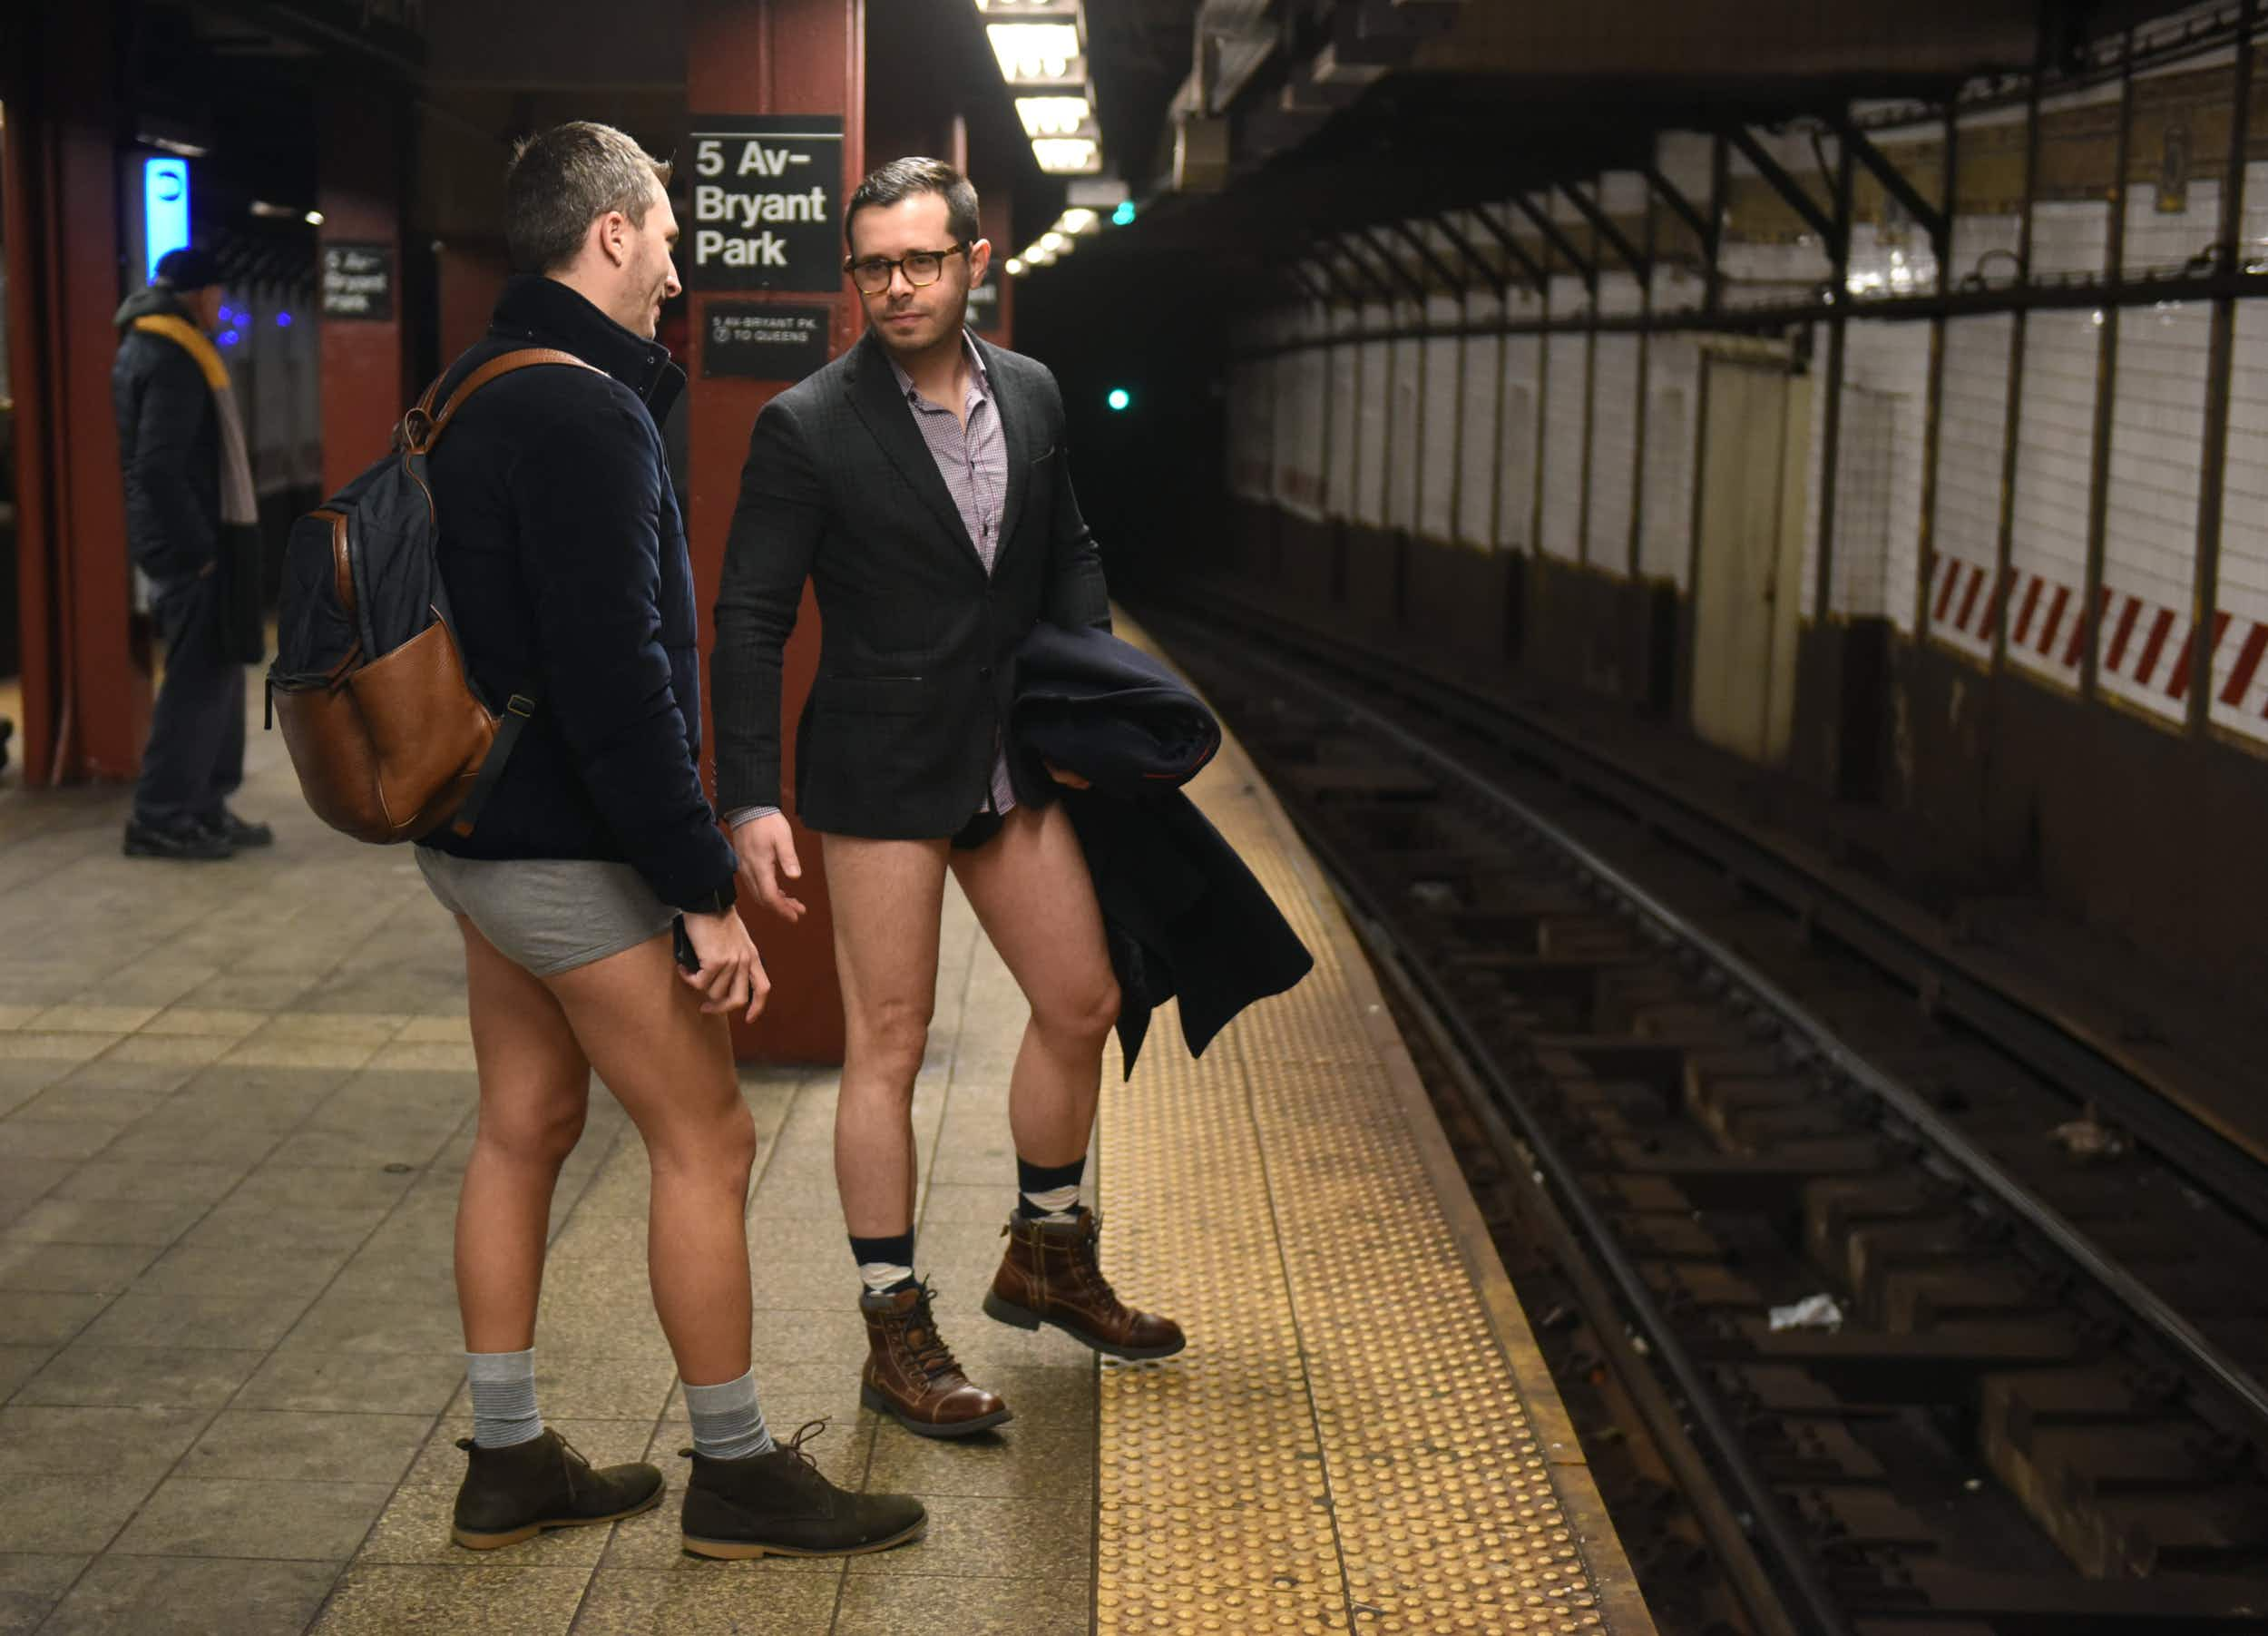 New Yorkers brave freezing temperatures for annual No Pants Subway Ride